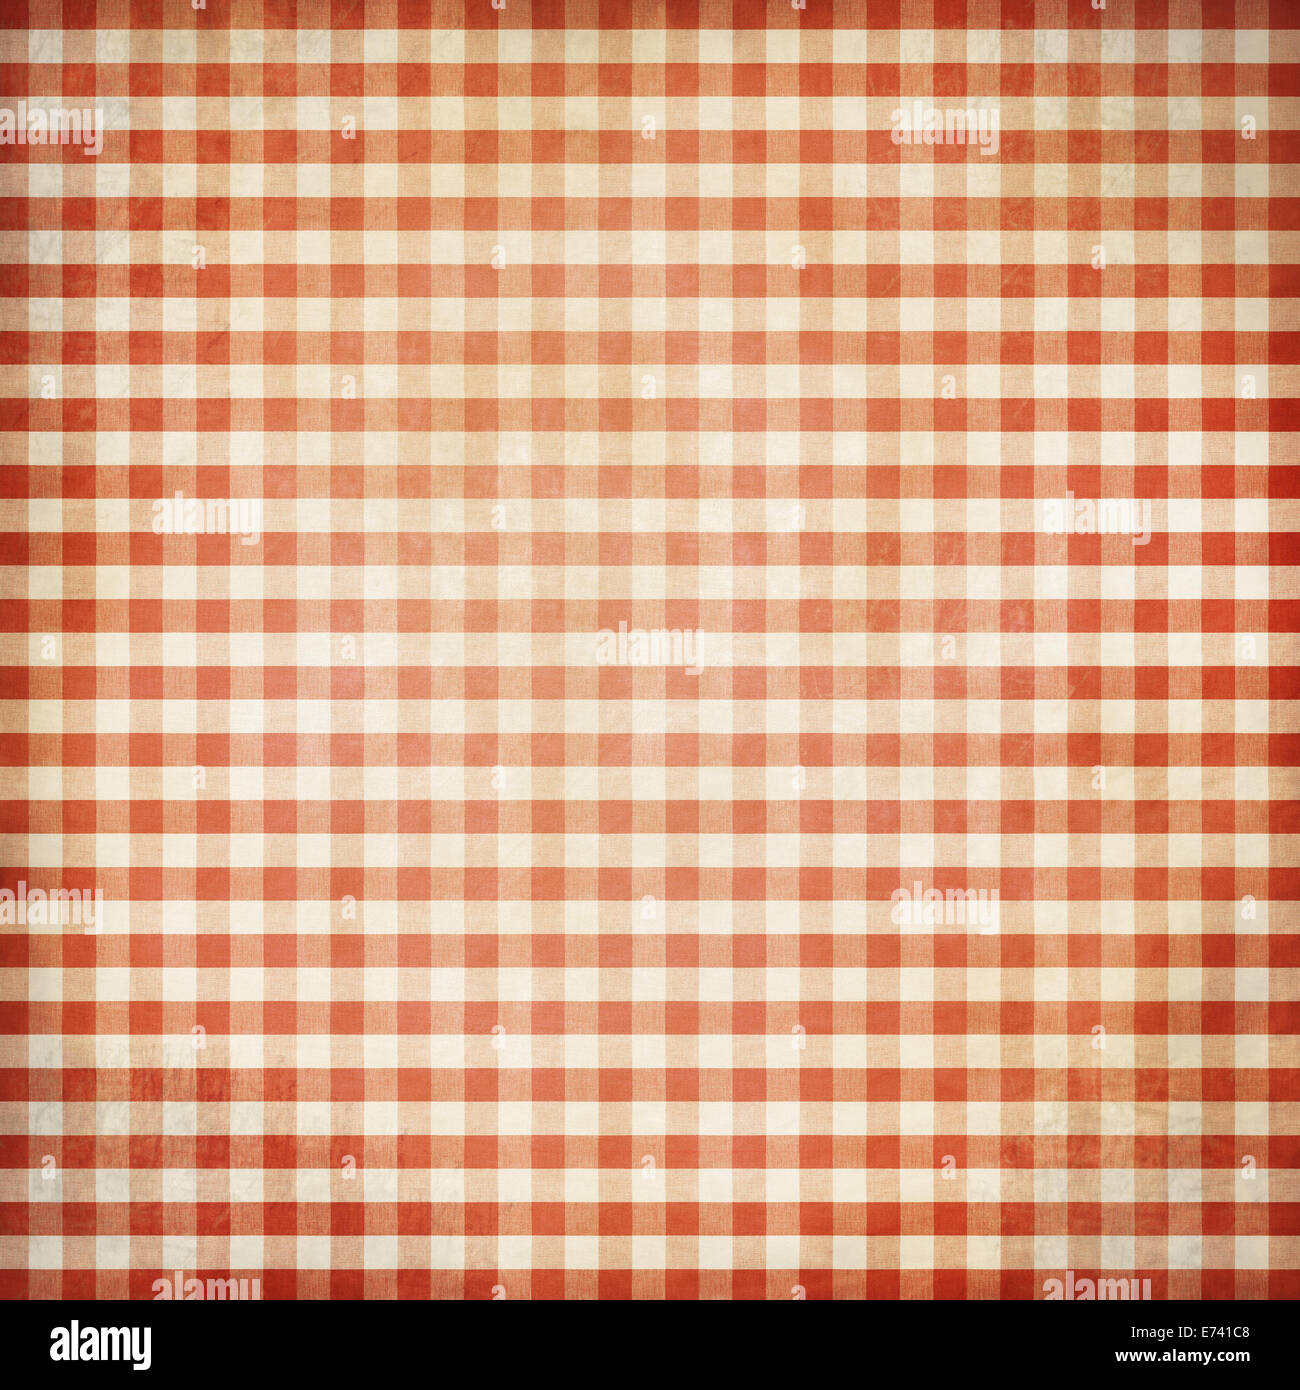 Red Grunge Checked Picnic Tablecloth Background Stock Photo ...